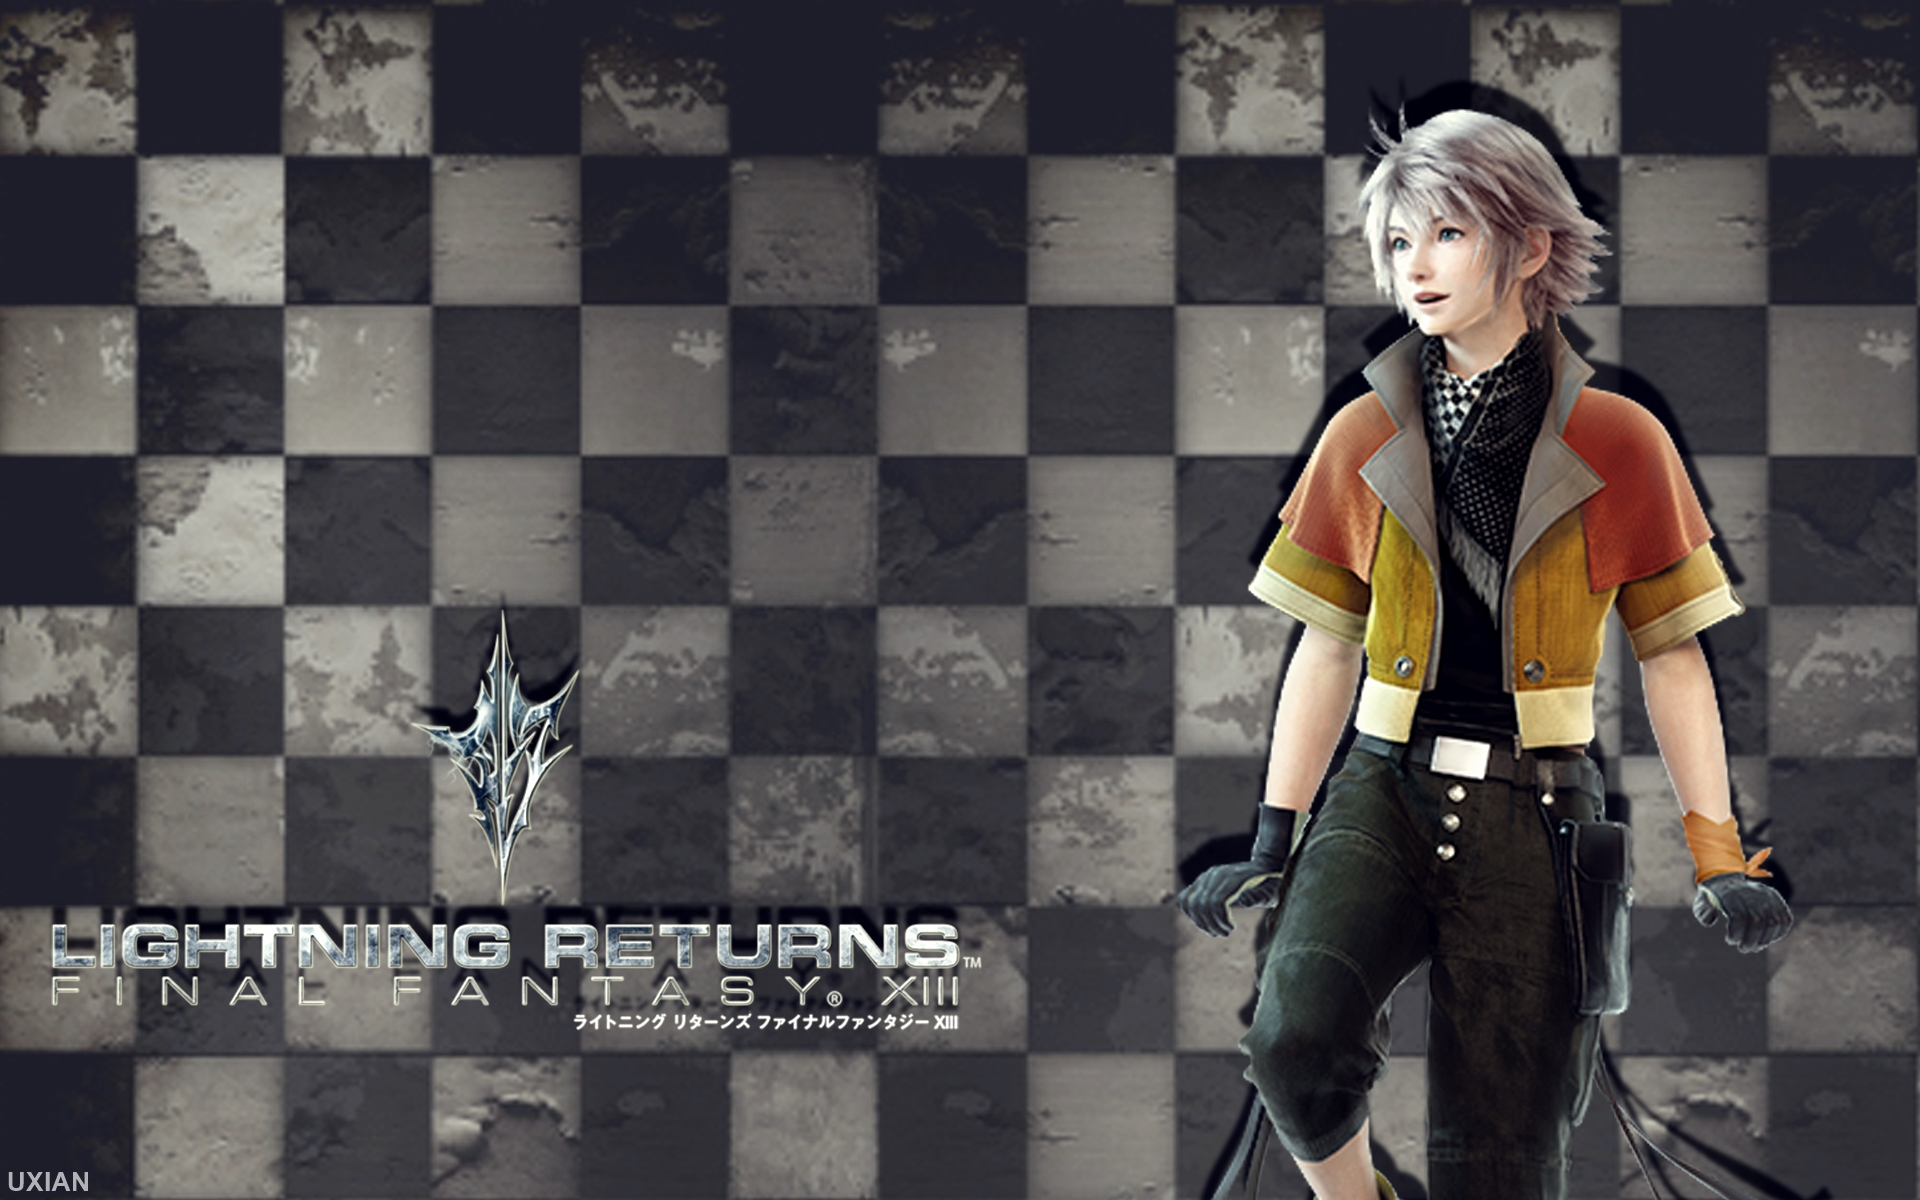 lightning returns: final fantasy xiii - hopeuxianxiii on deviantart